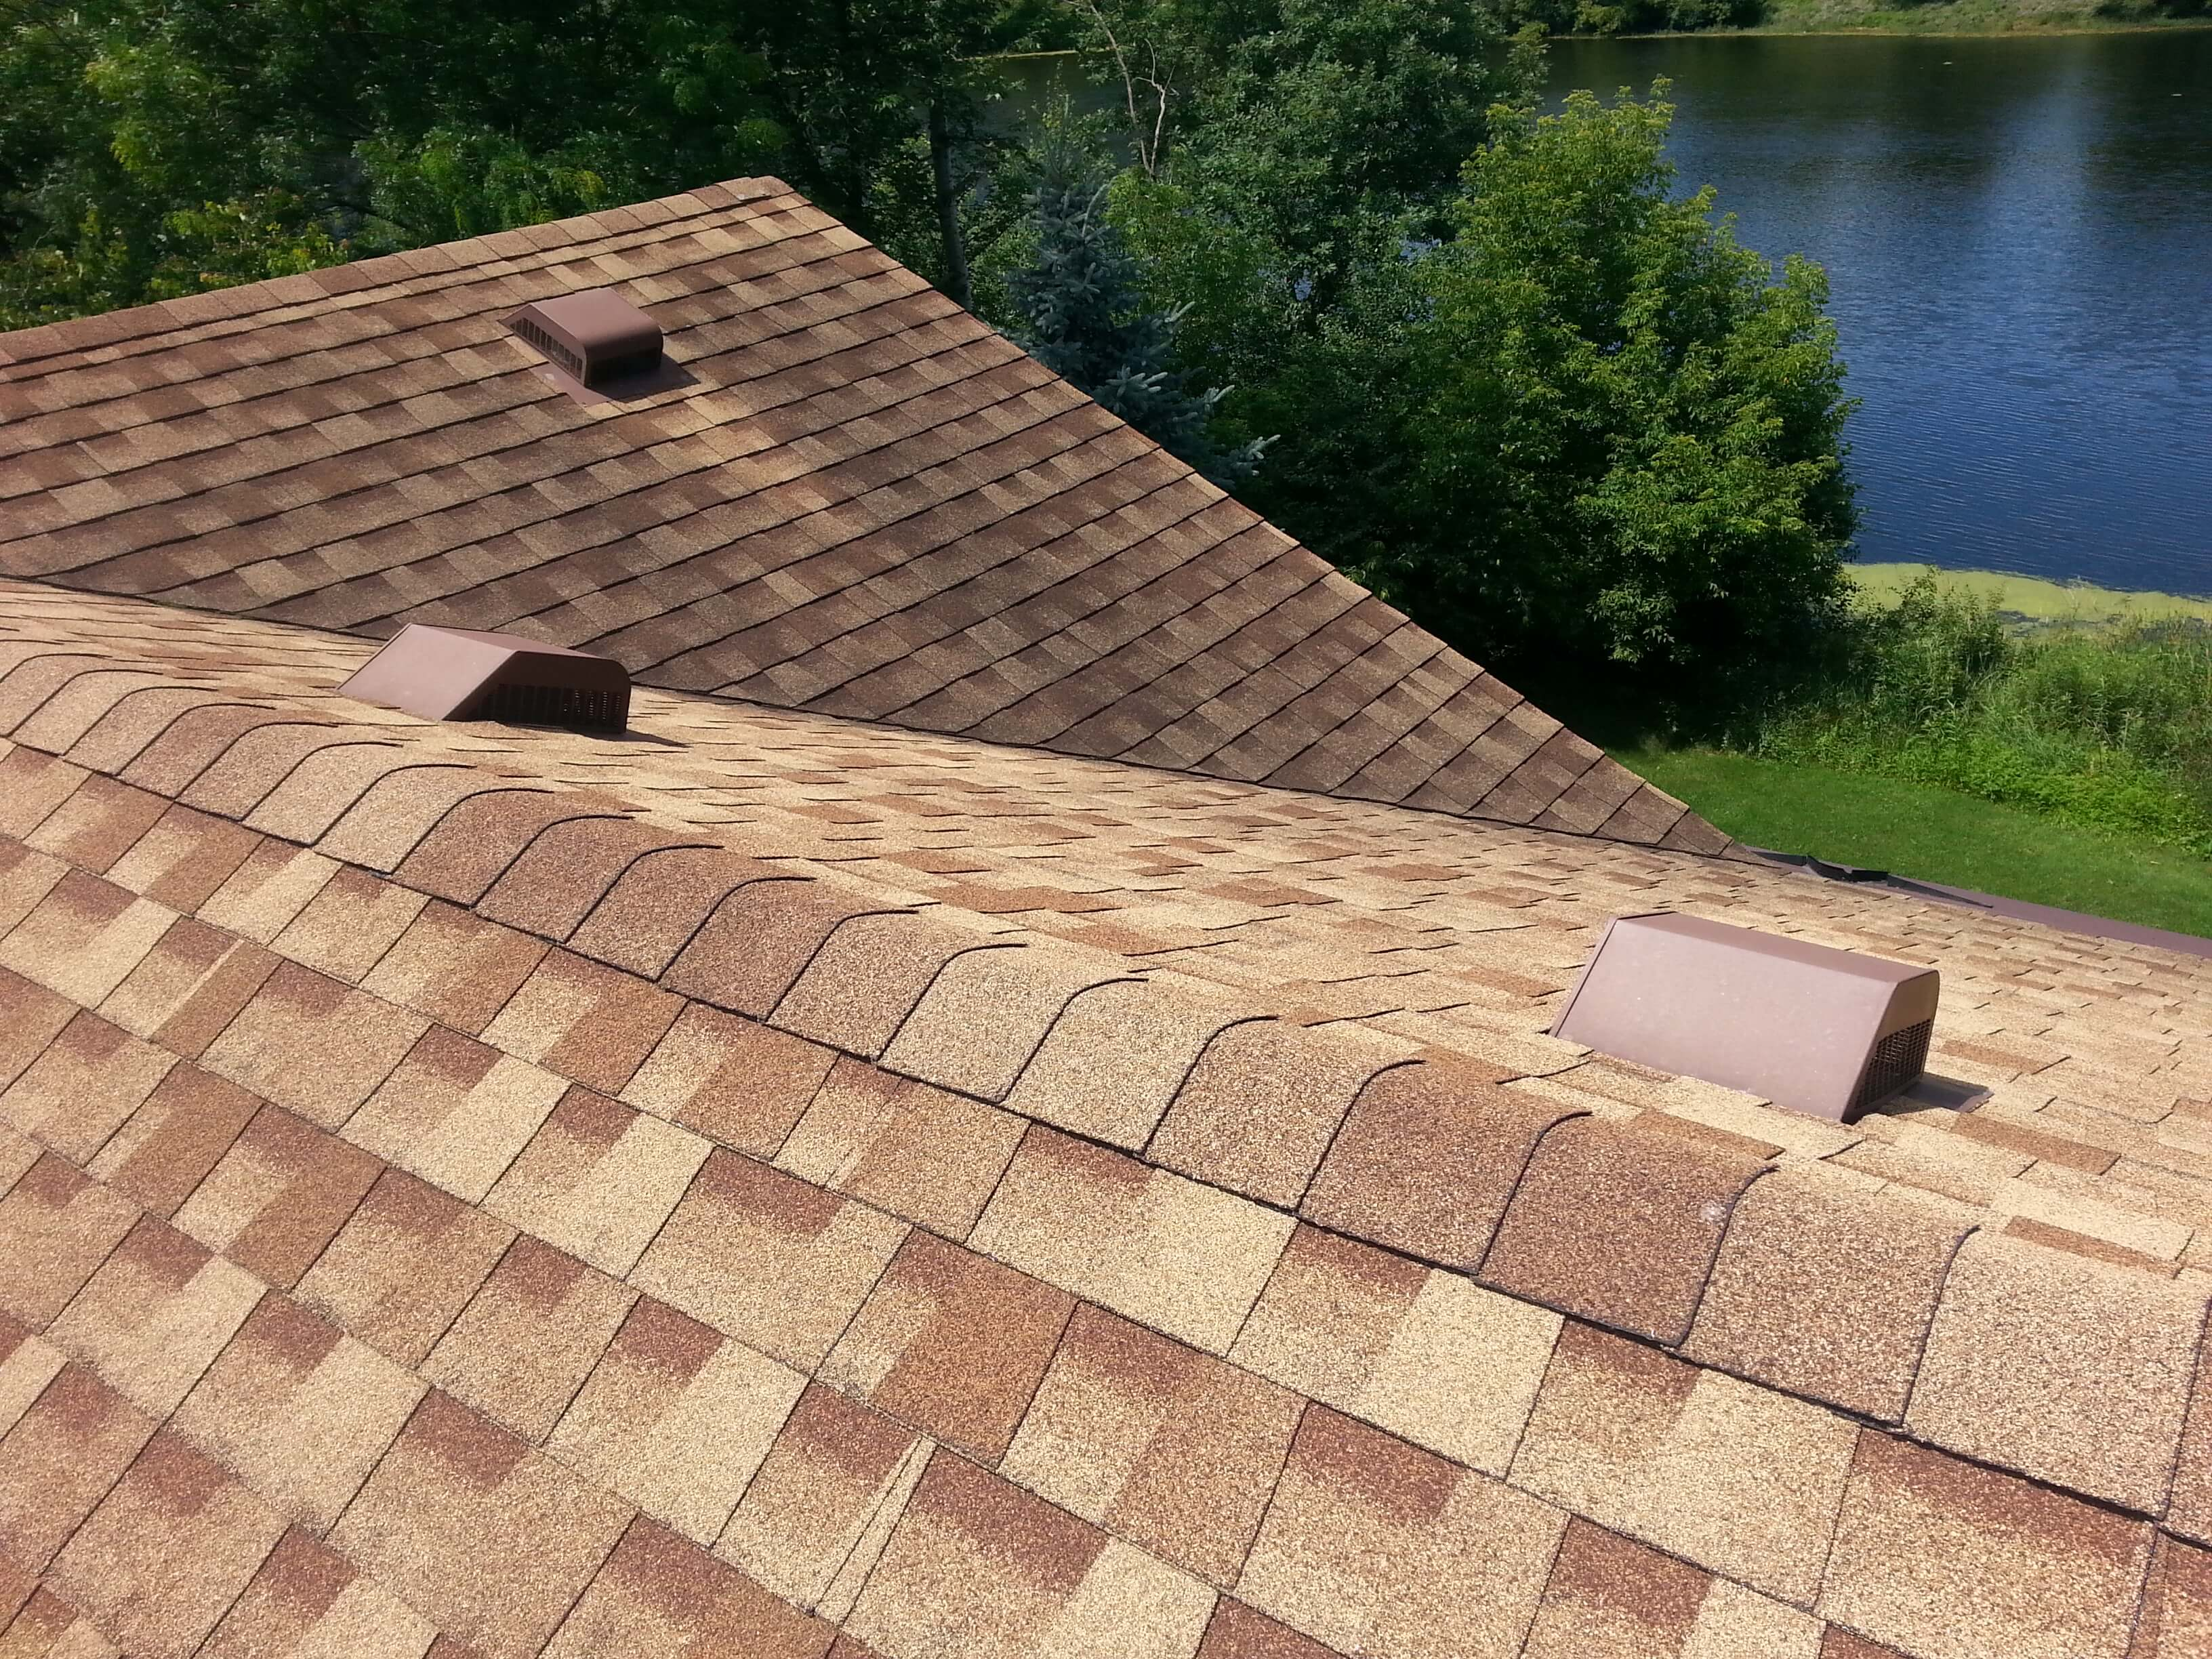 Crc Biltmore Shingles Roof Replacement Part 1 Should Contractors Use Gaf Owens Corning